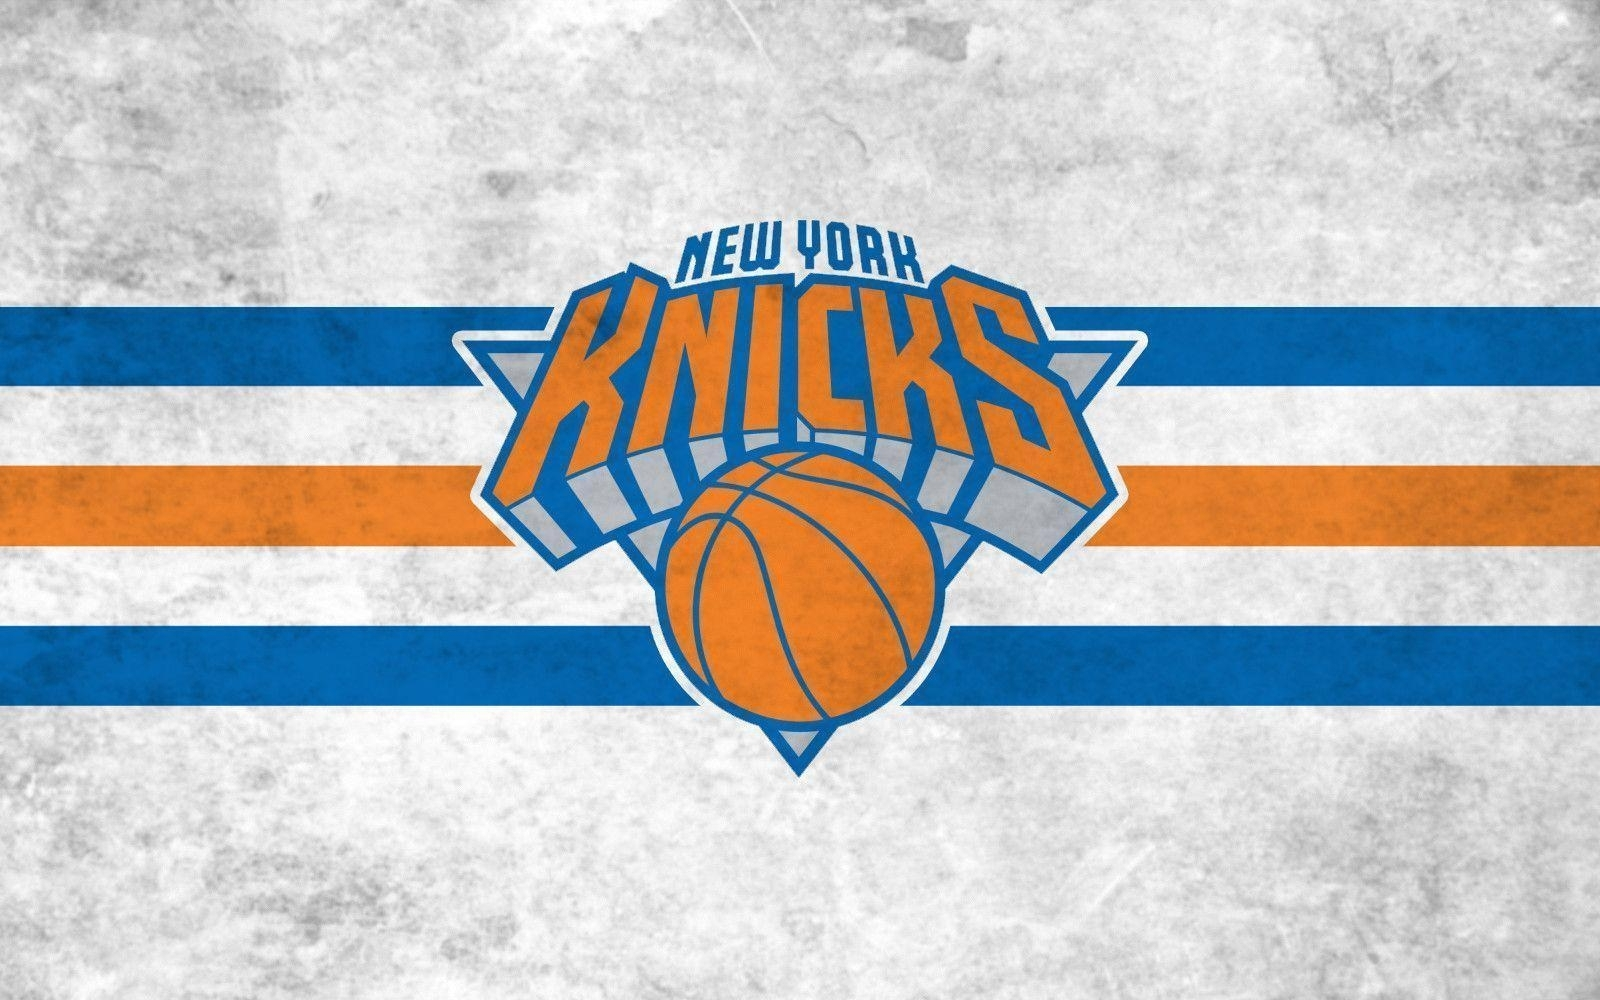 new york knicks wallpapers and background images - stmed